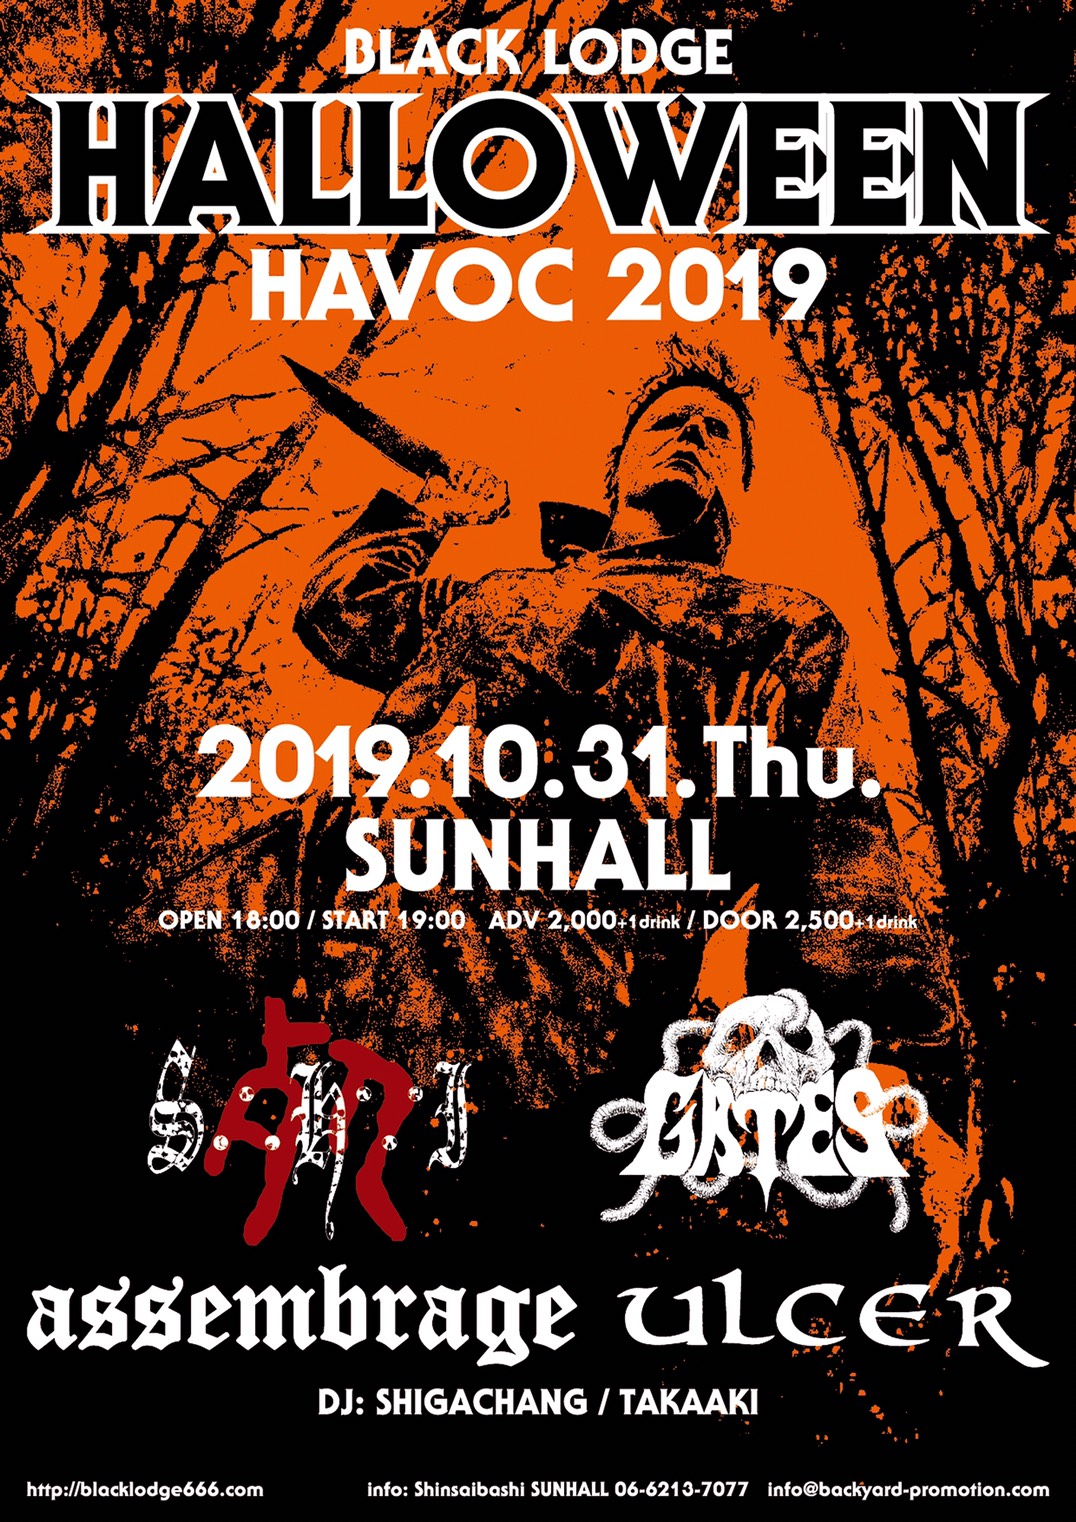 BLACK LODGE HALLOWEEN HAVOC 2019